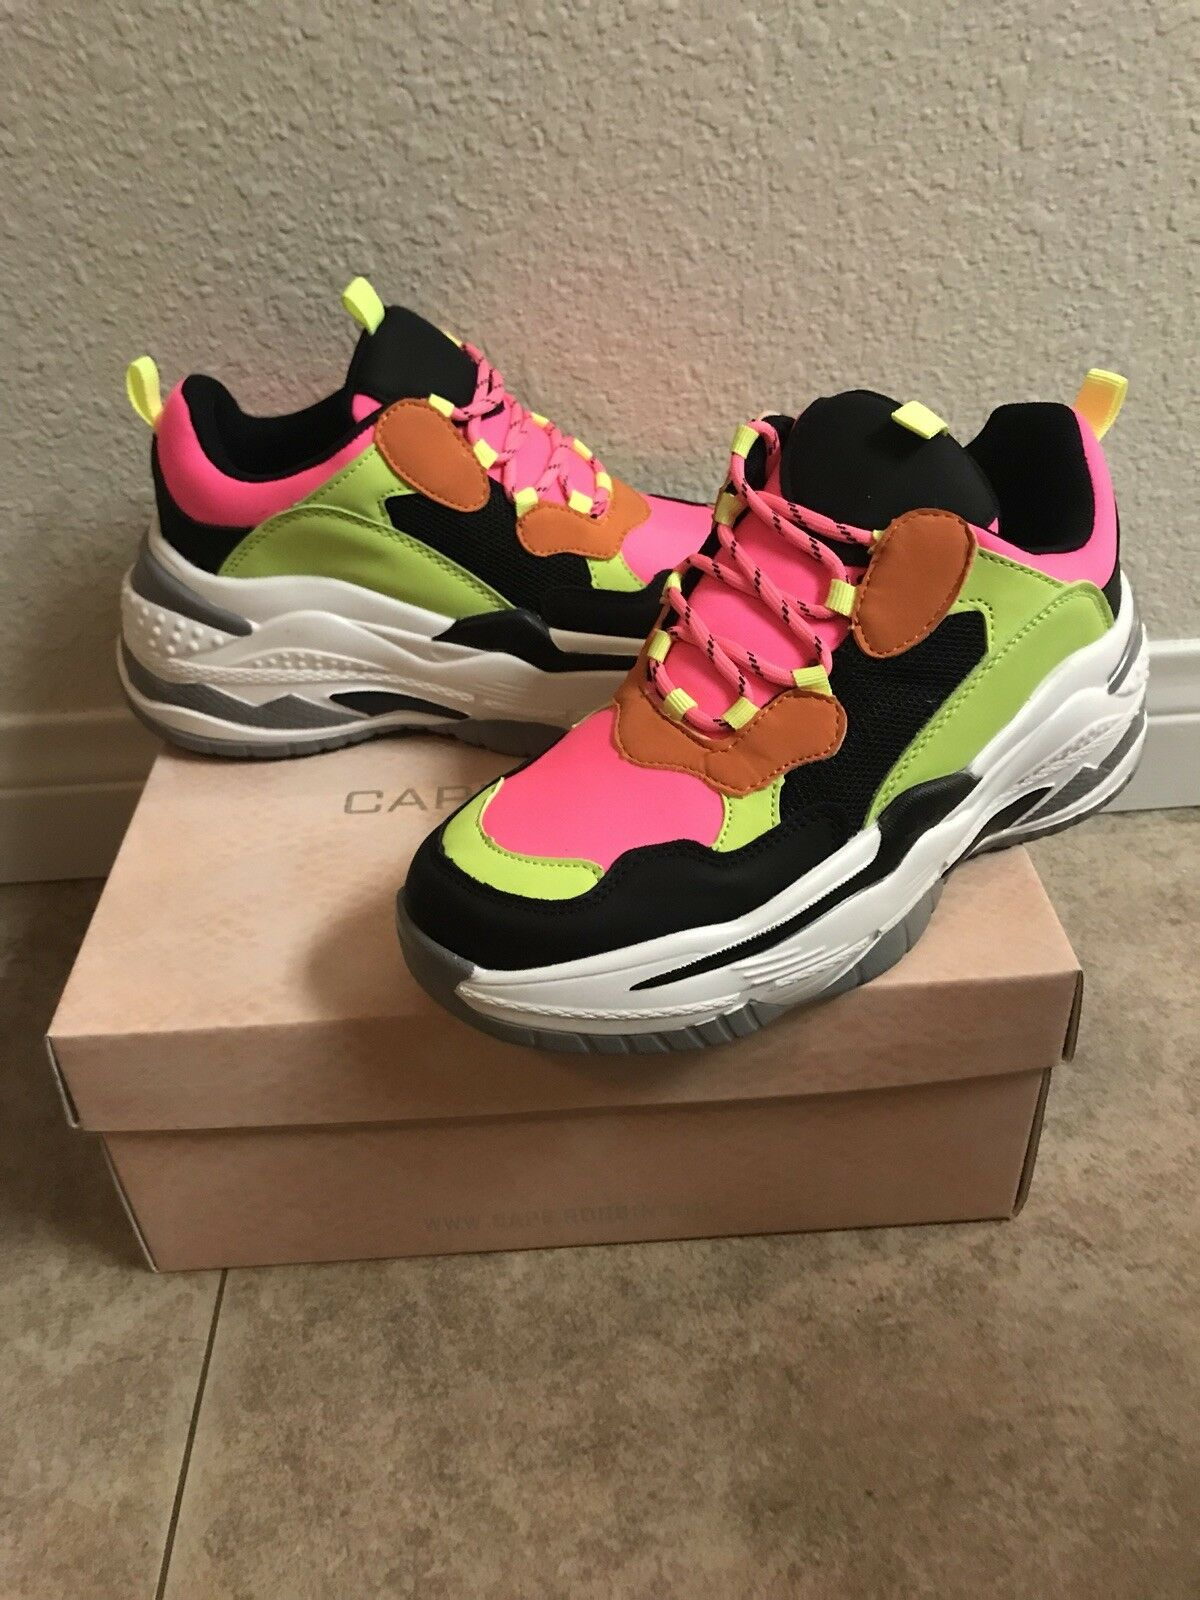 BNIB Cape Robbin Sneakers SPACESHIP Neon color Blk 'Ugly Cool' Chunky Sole Sz 8